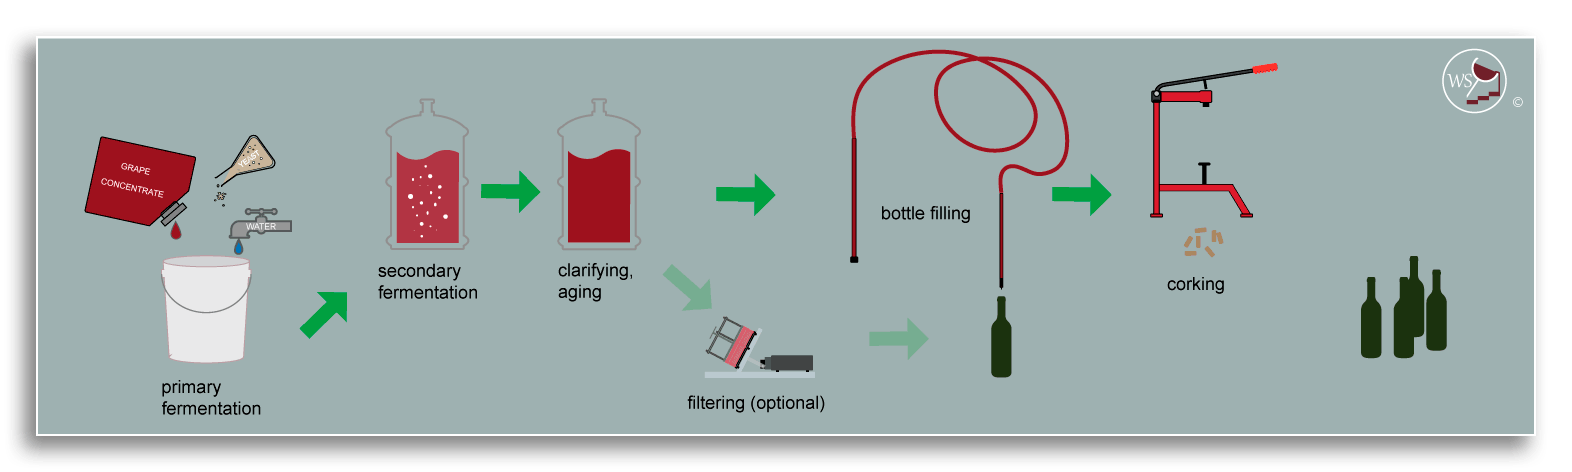 Infographic showing workflow for wine making from a kit